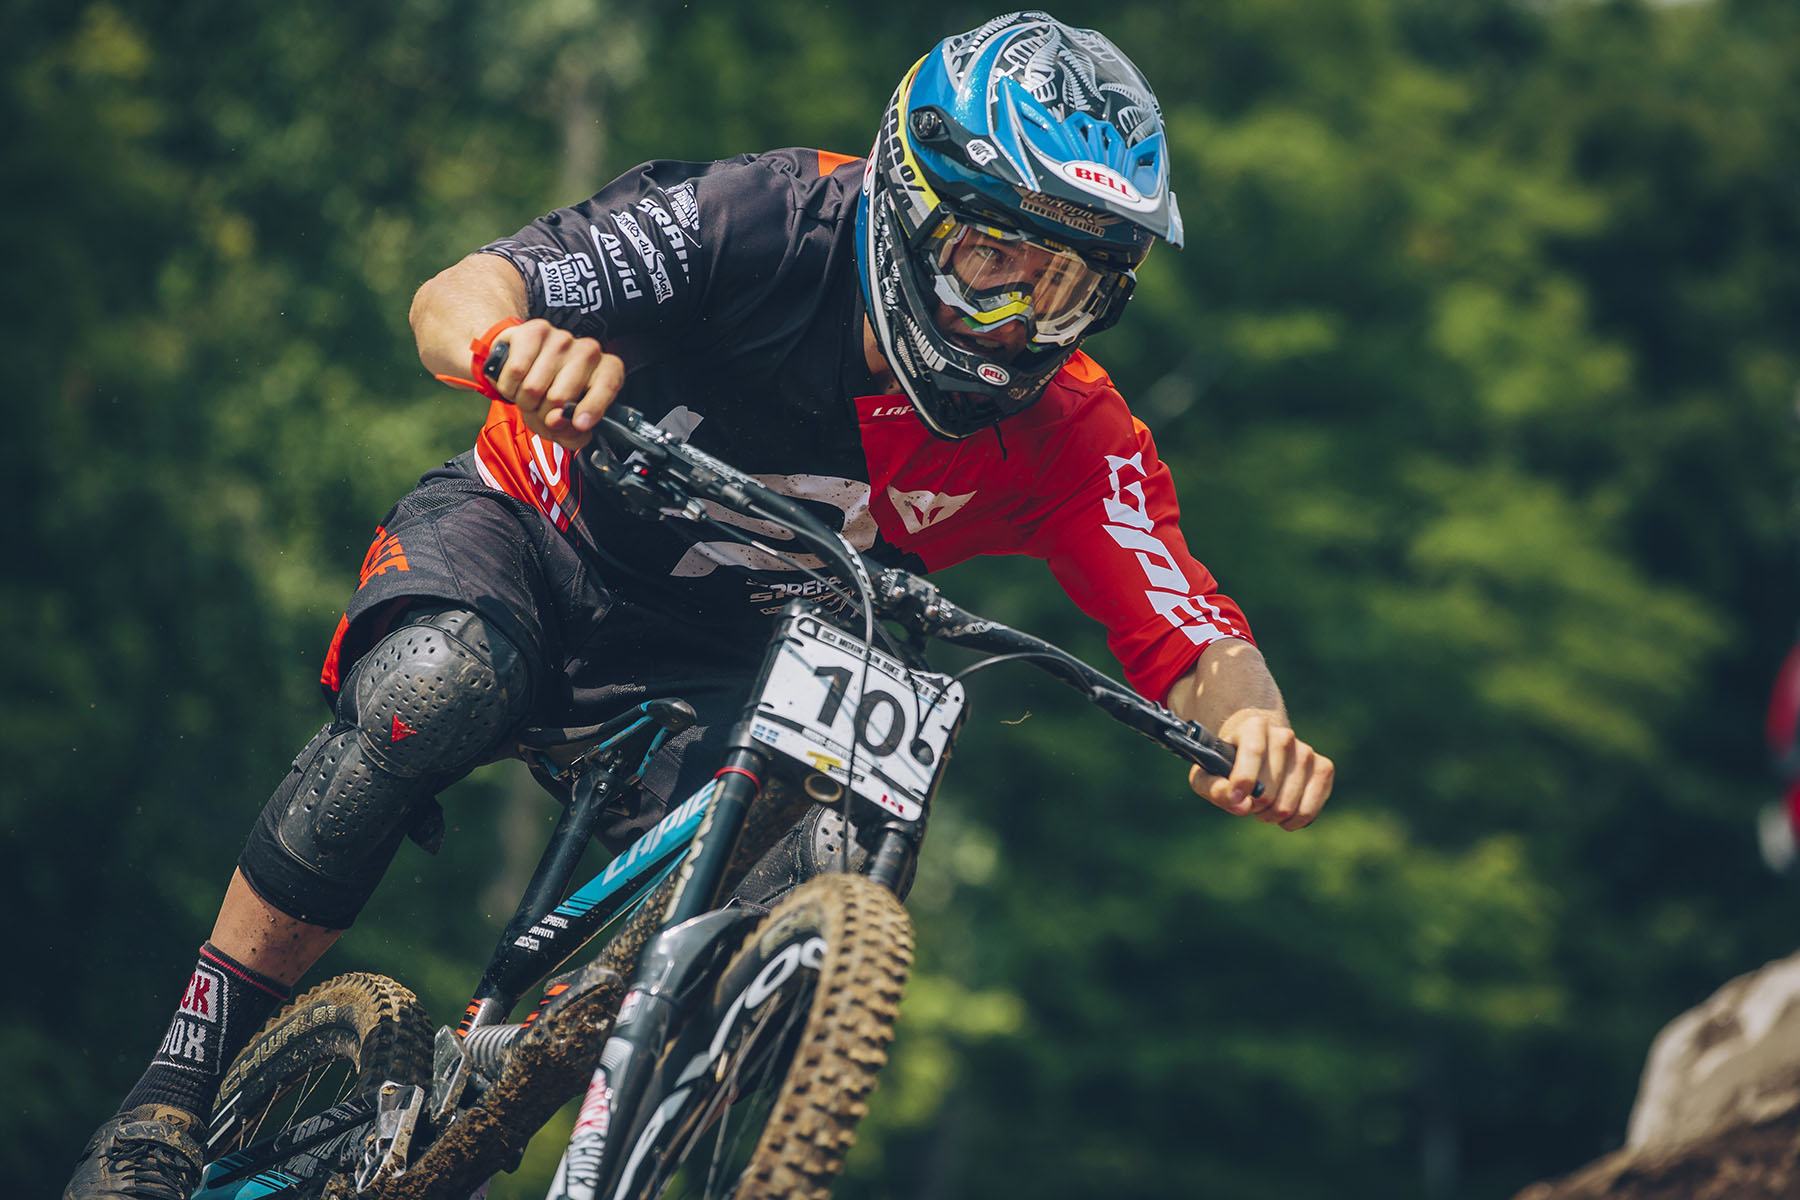 Sam Blenkinsop put down the run of the season for him as he takes home 5th place today. On track just having fun all week paid off for him and with the dry conditions in his favour he was able to put the pedal down.